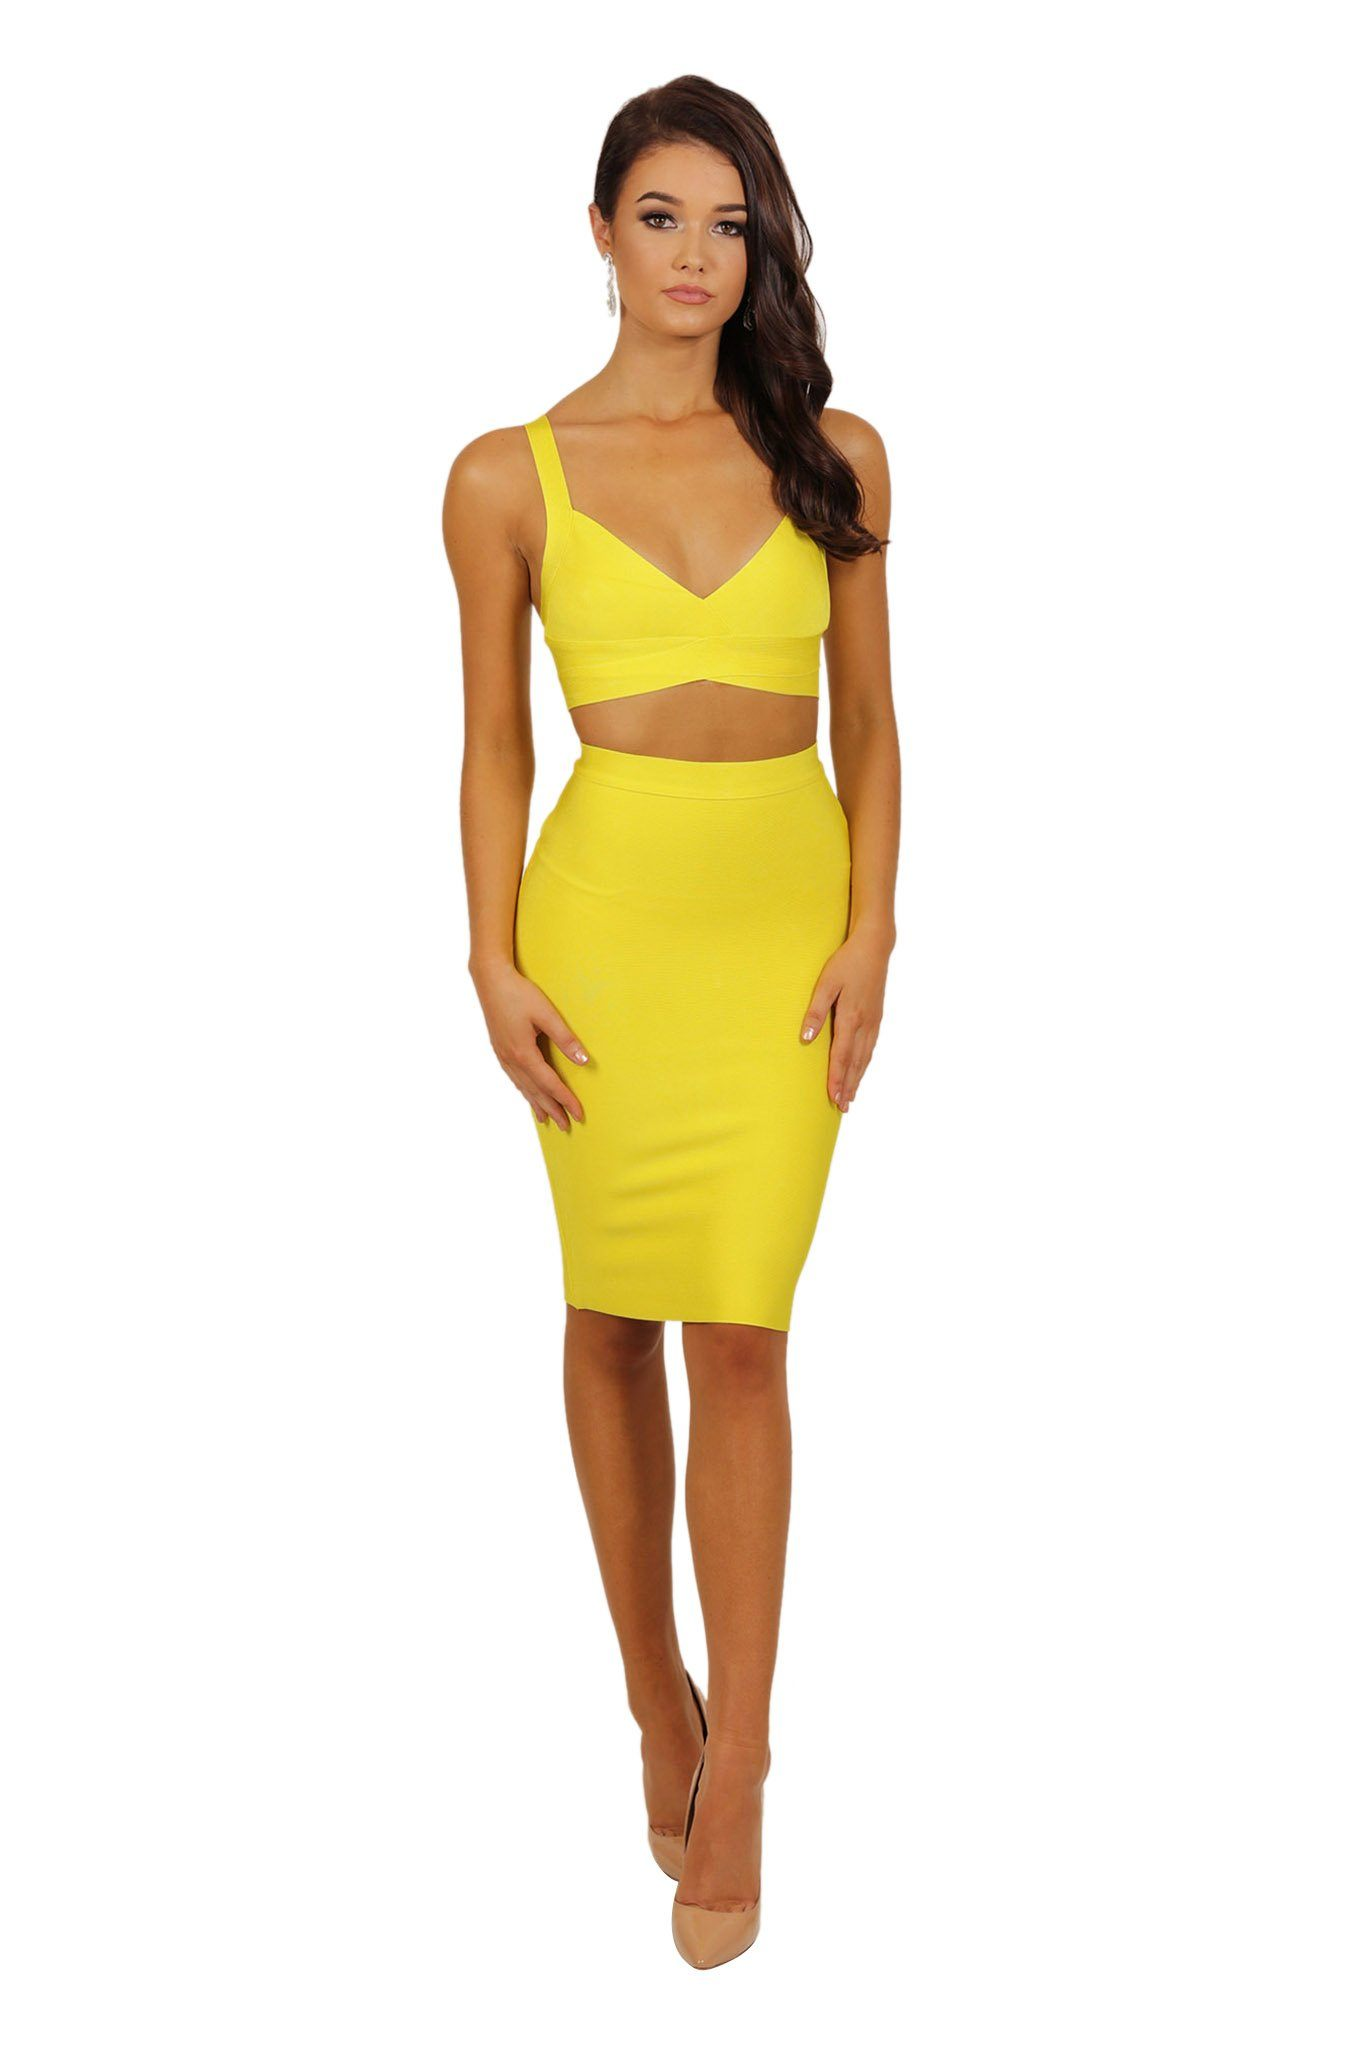 c37eec78551d Two-piece bandage dress set including bralette style crop top and midi  pencil skirt in